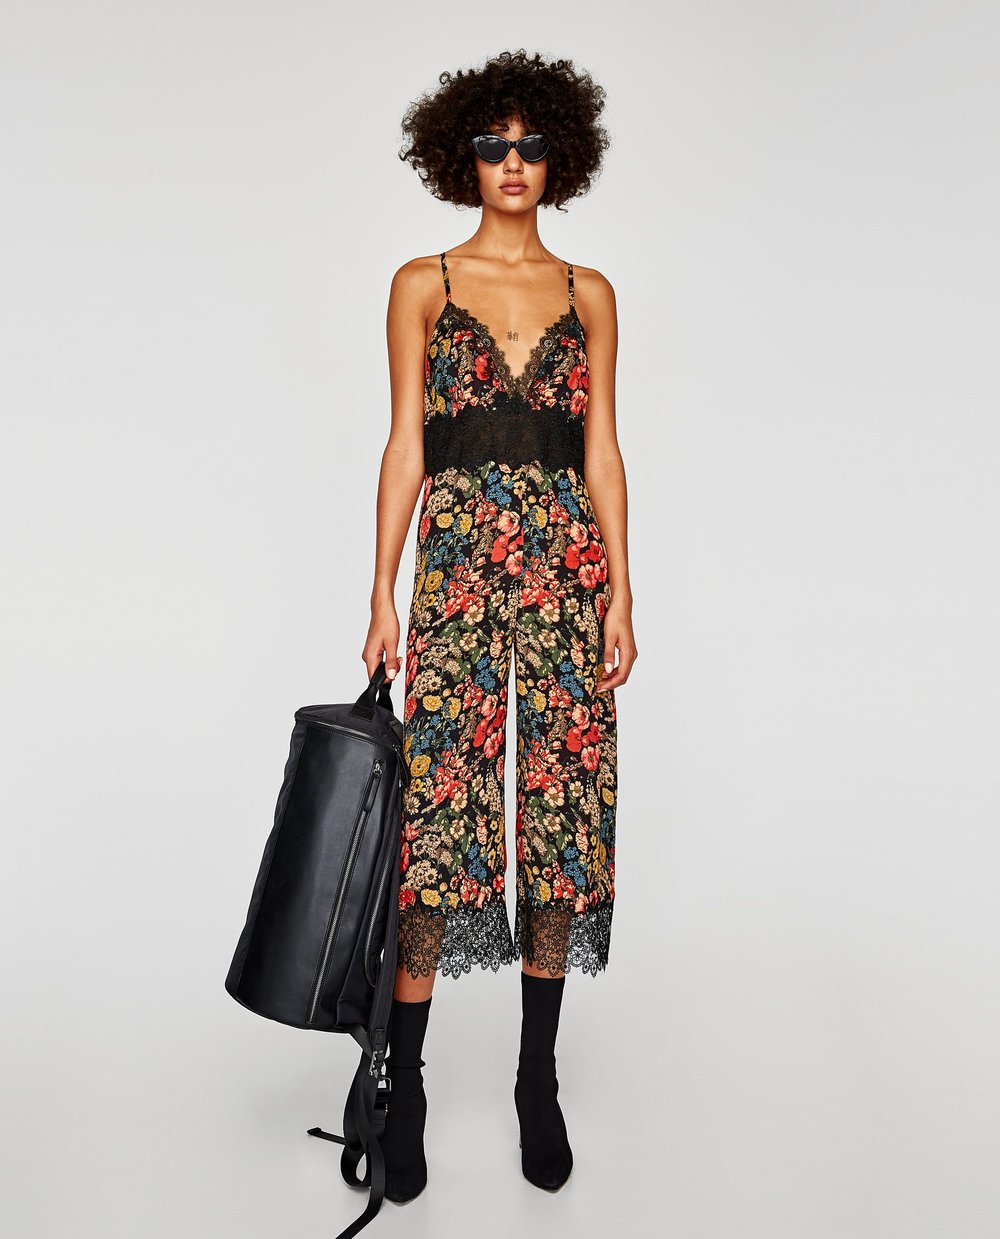 CROPPED LACE JUMPSUIT. Zara. Was: $89. Now: $35.